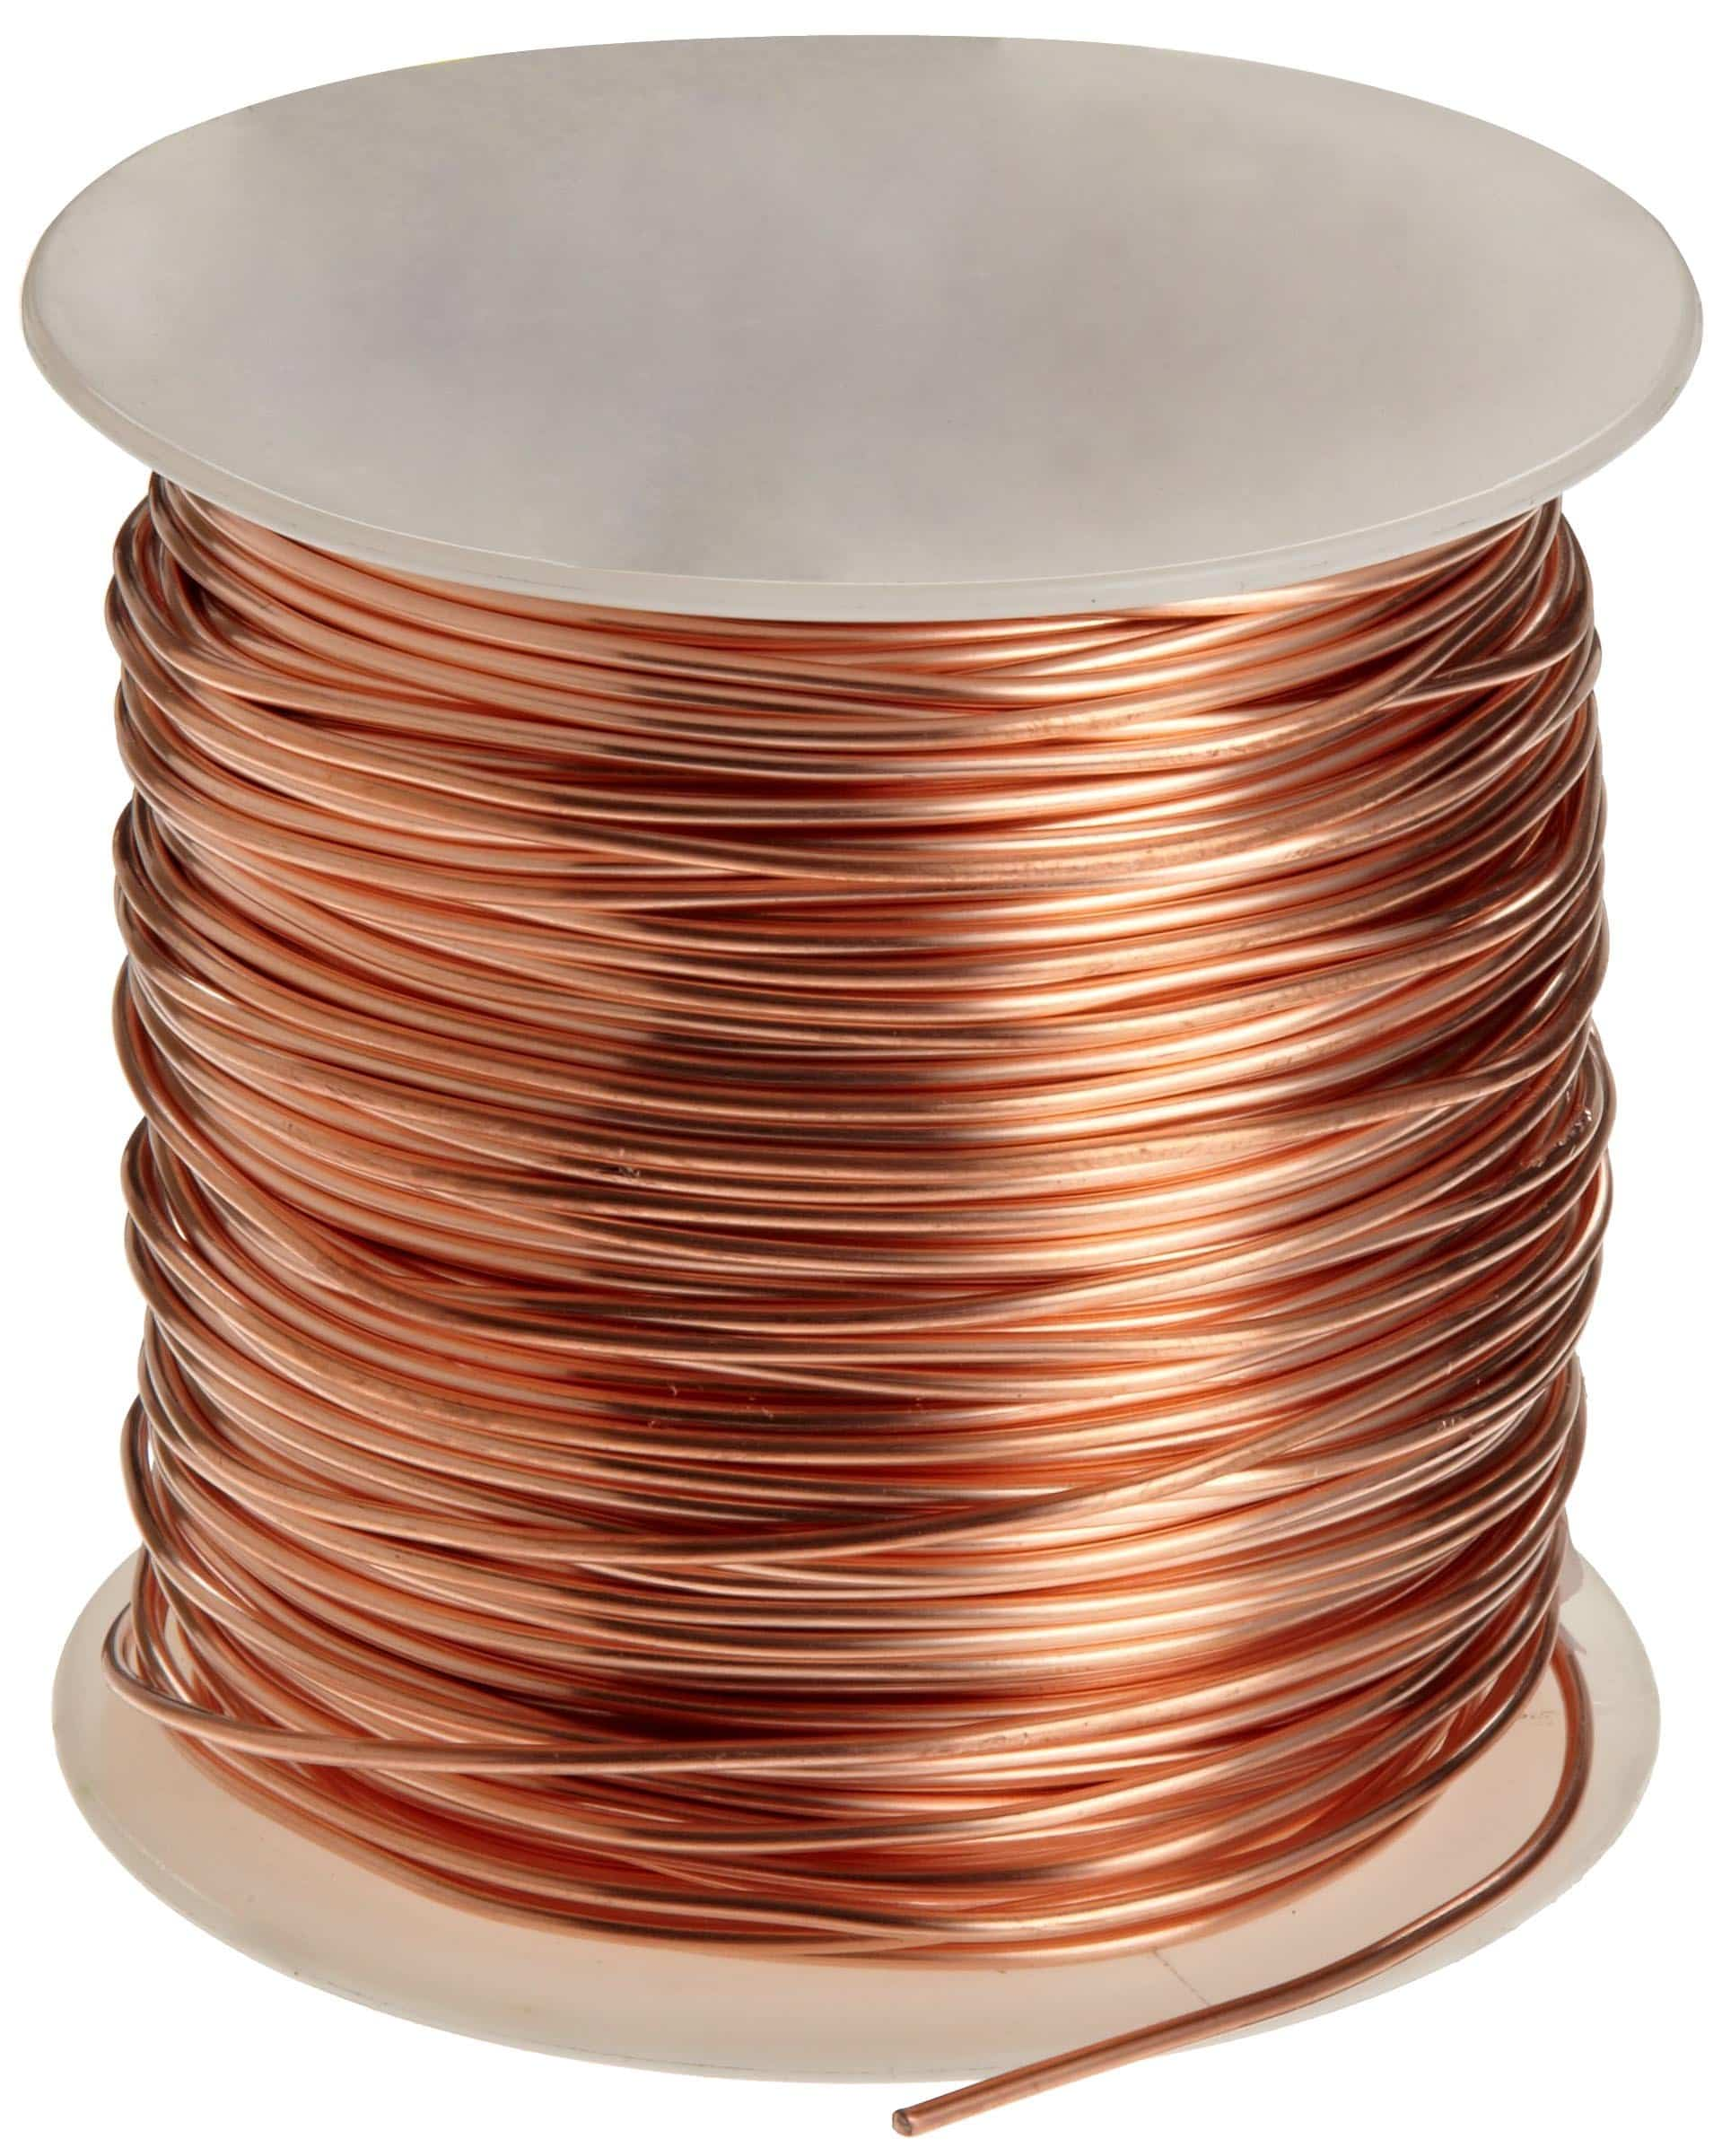 Spring is the perfect time for a change: start with recycling copper